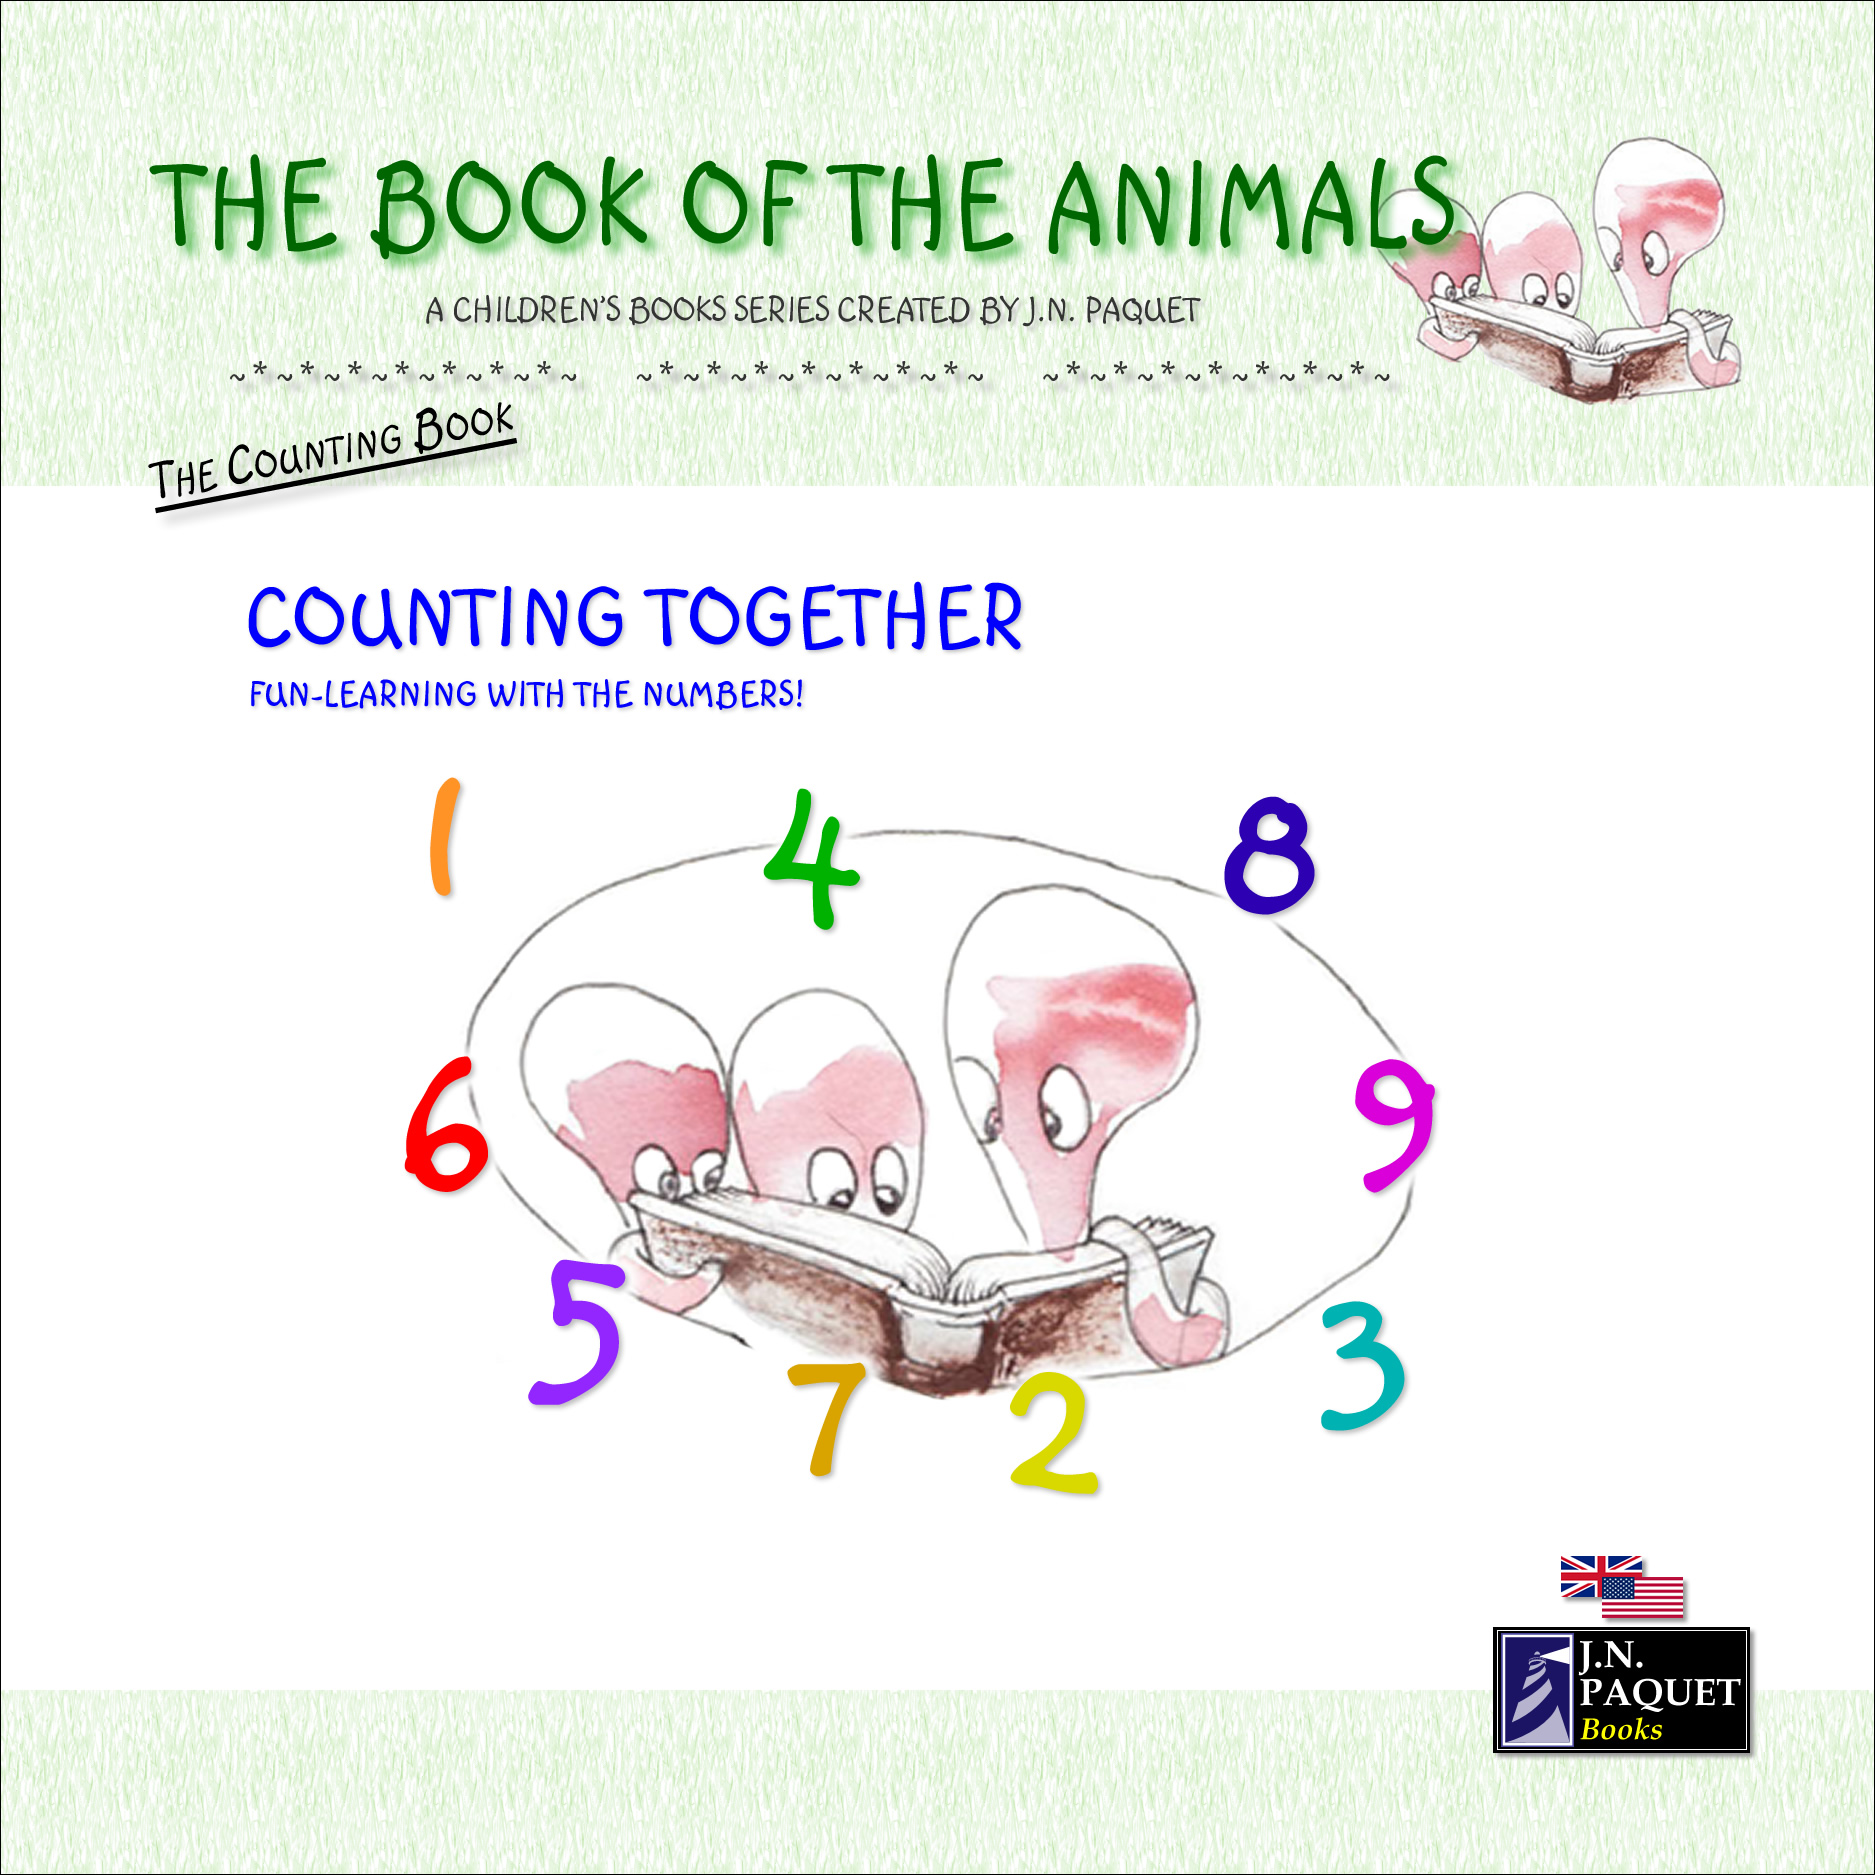 J.N. PAQUET - The Book of The Animals - Counting Together